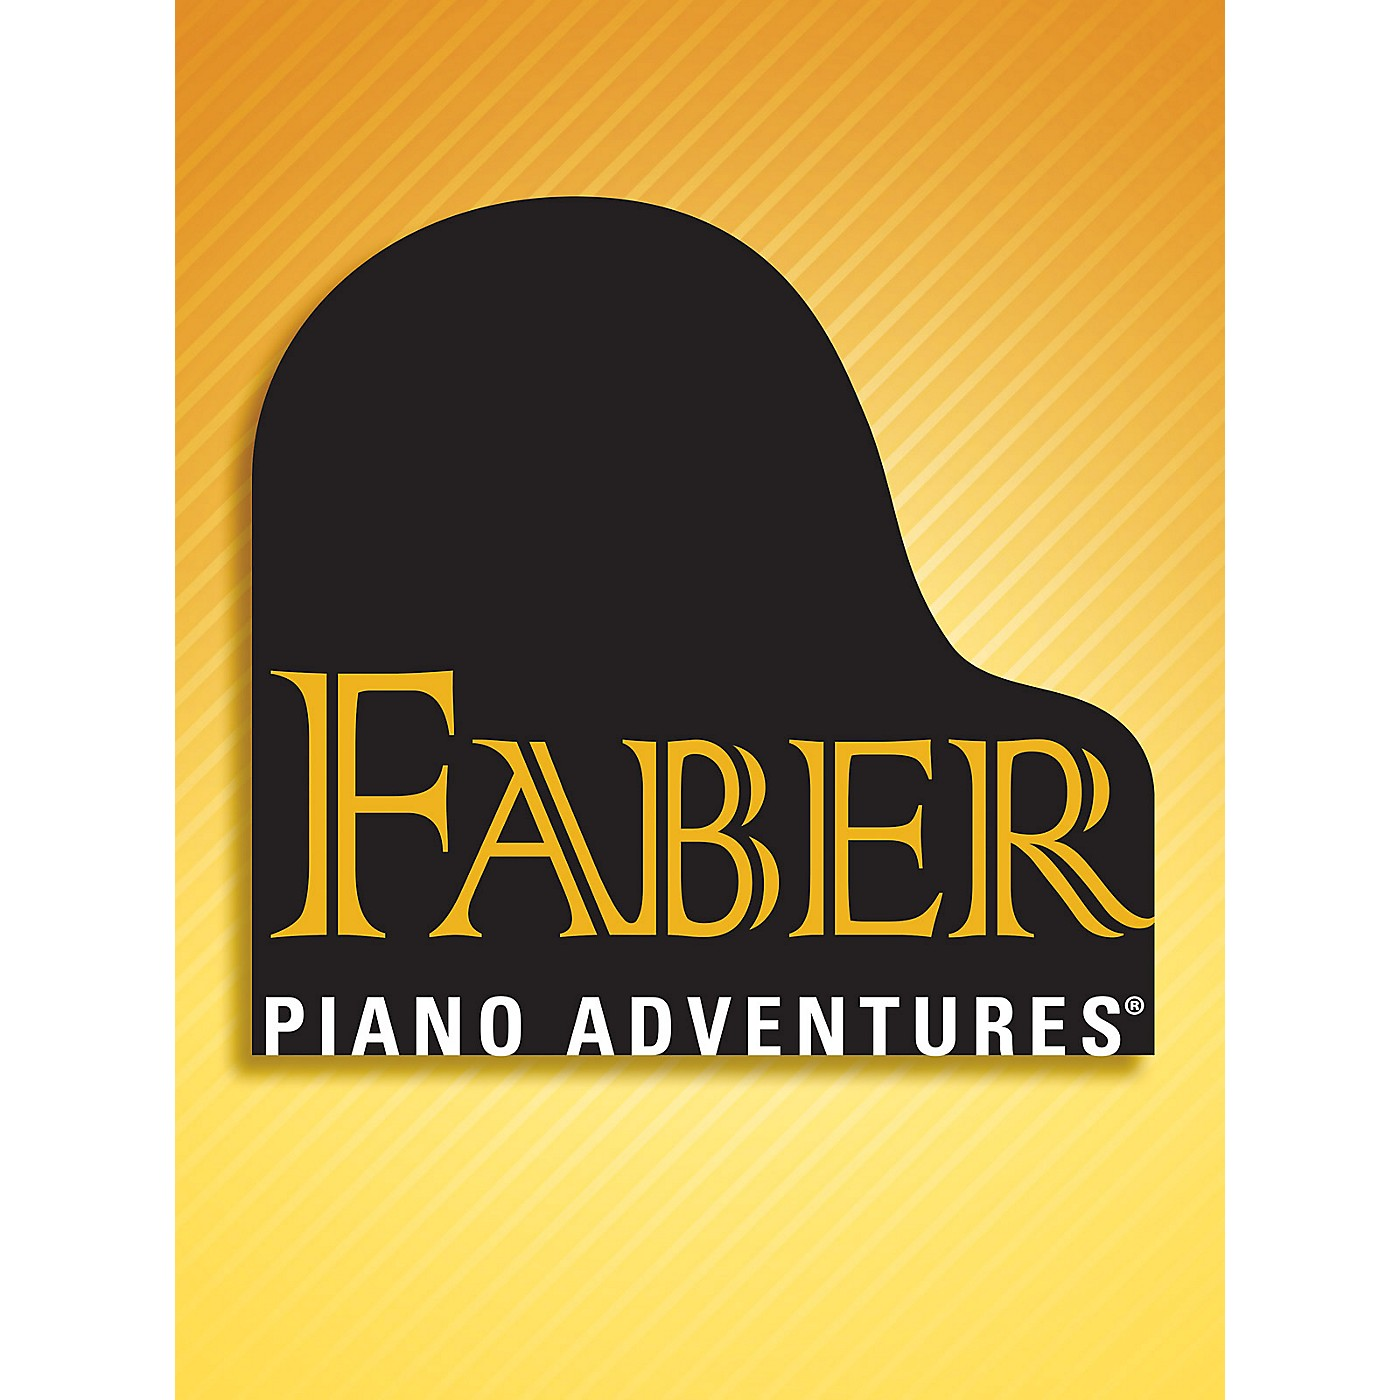 Faber Piano Adventures Level 4 - Popular Repertoire Enhanced CD with MIDI Faber Piano Adventures® Series CD by Nancy Faber thumbnail